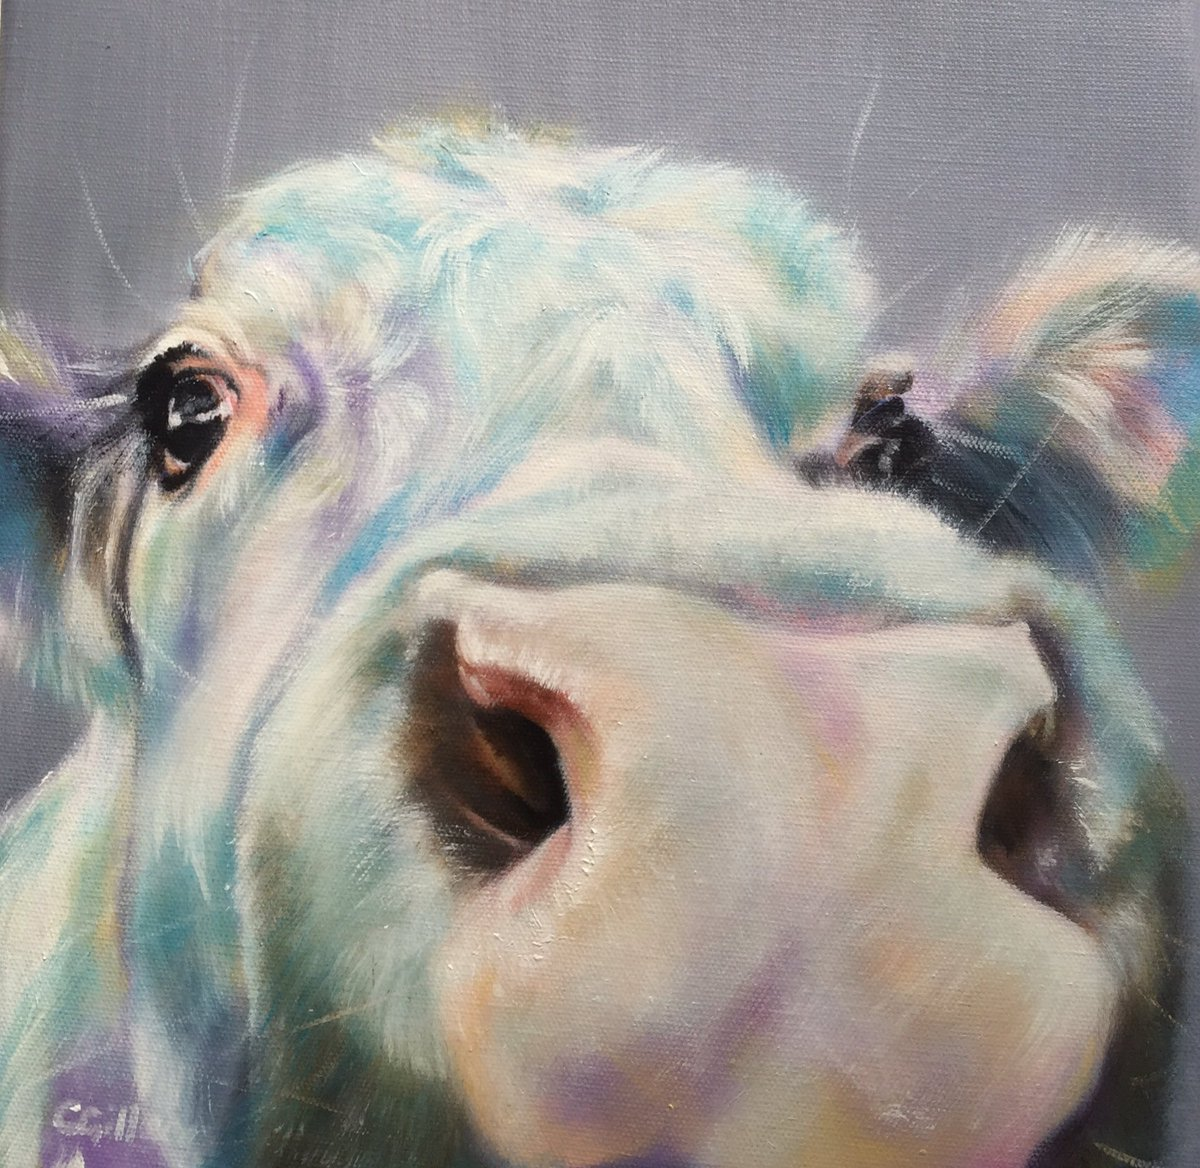 Hello there Friday-coming in for a closer look #colour_collective #opalgrey #cow #nose #oil #painting #gallery #art #moo #zoom #animal #farm<br>http://pic.twitter.com/GQ9MYXeOS8